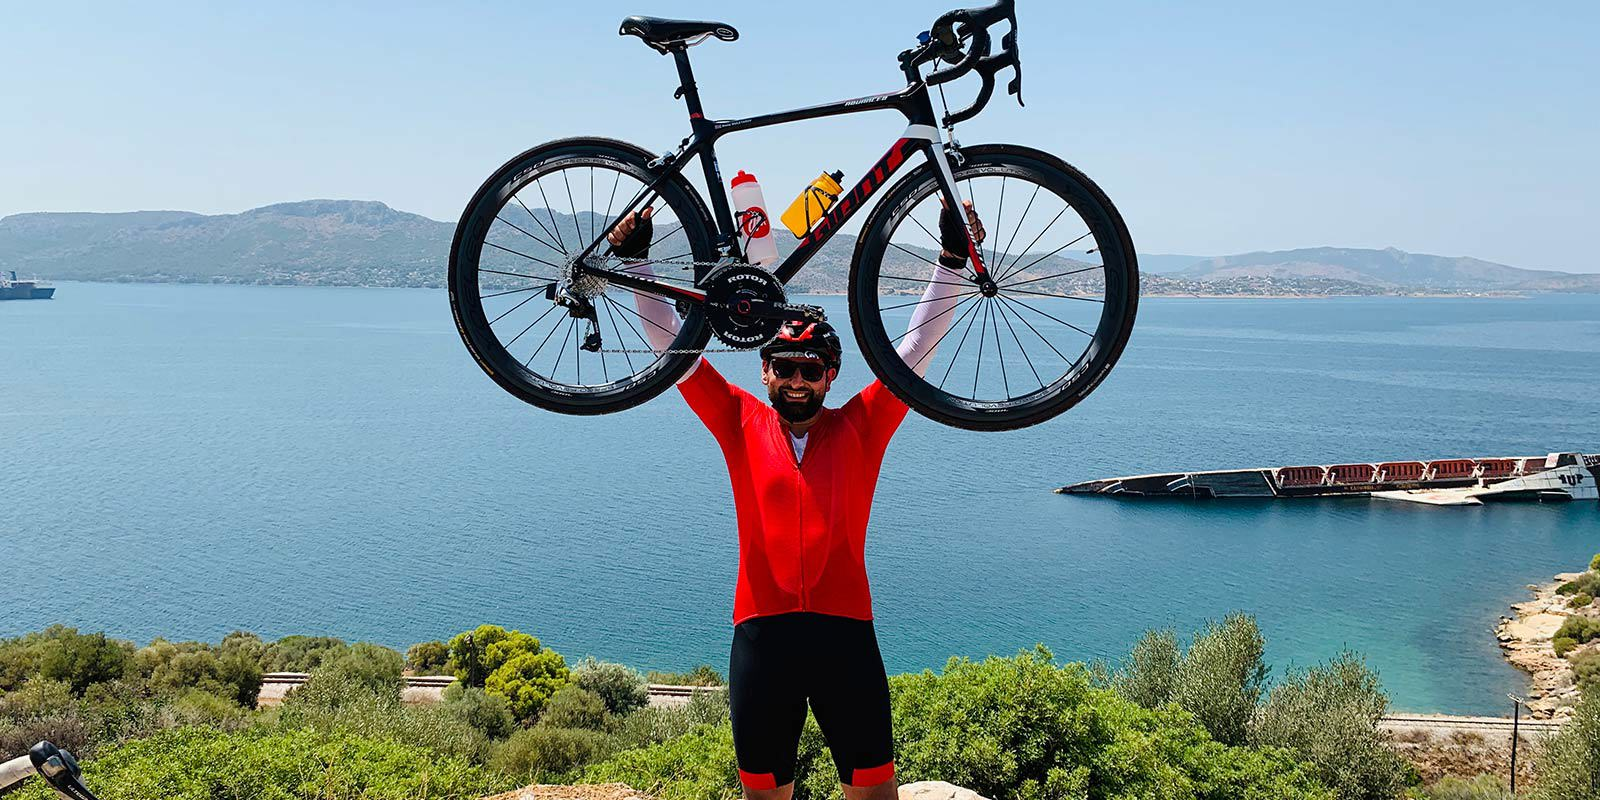 Cycling from London to Stockholm for the Turks of Europe!